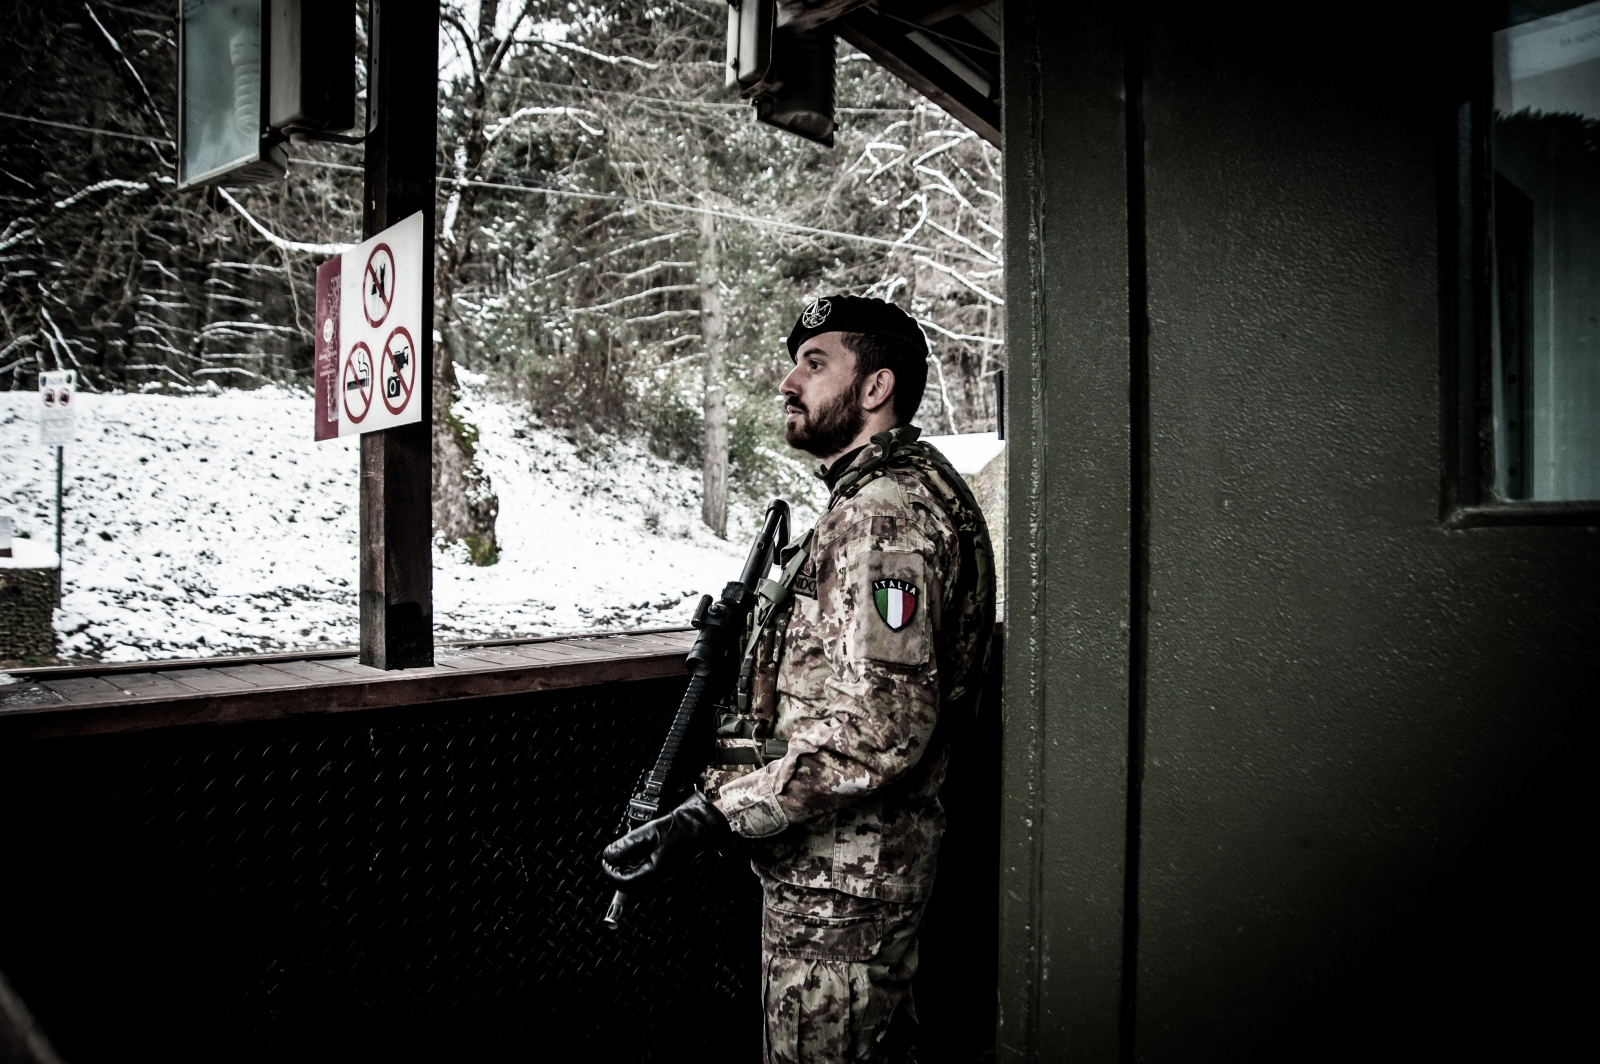 A KFOR soldier during the monitoring service at one of the checkpoints surrounding the monastery of Visoki Dečani.